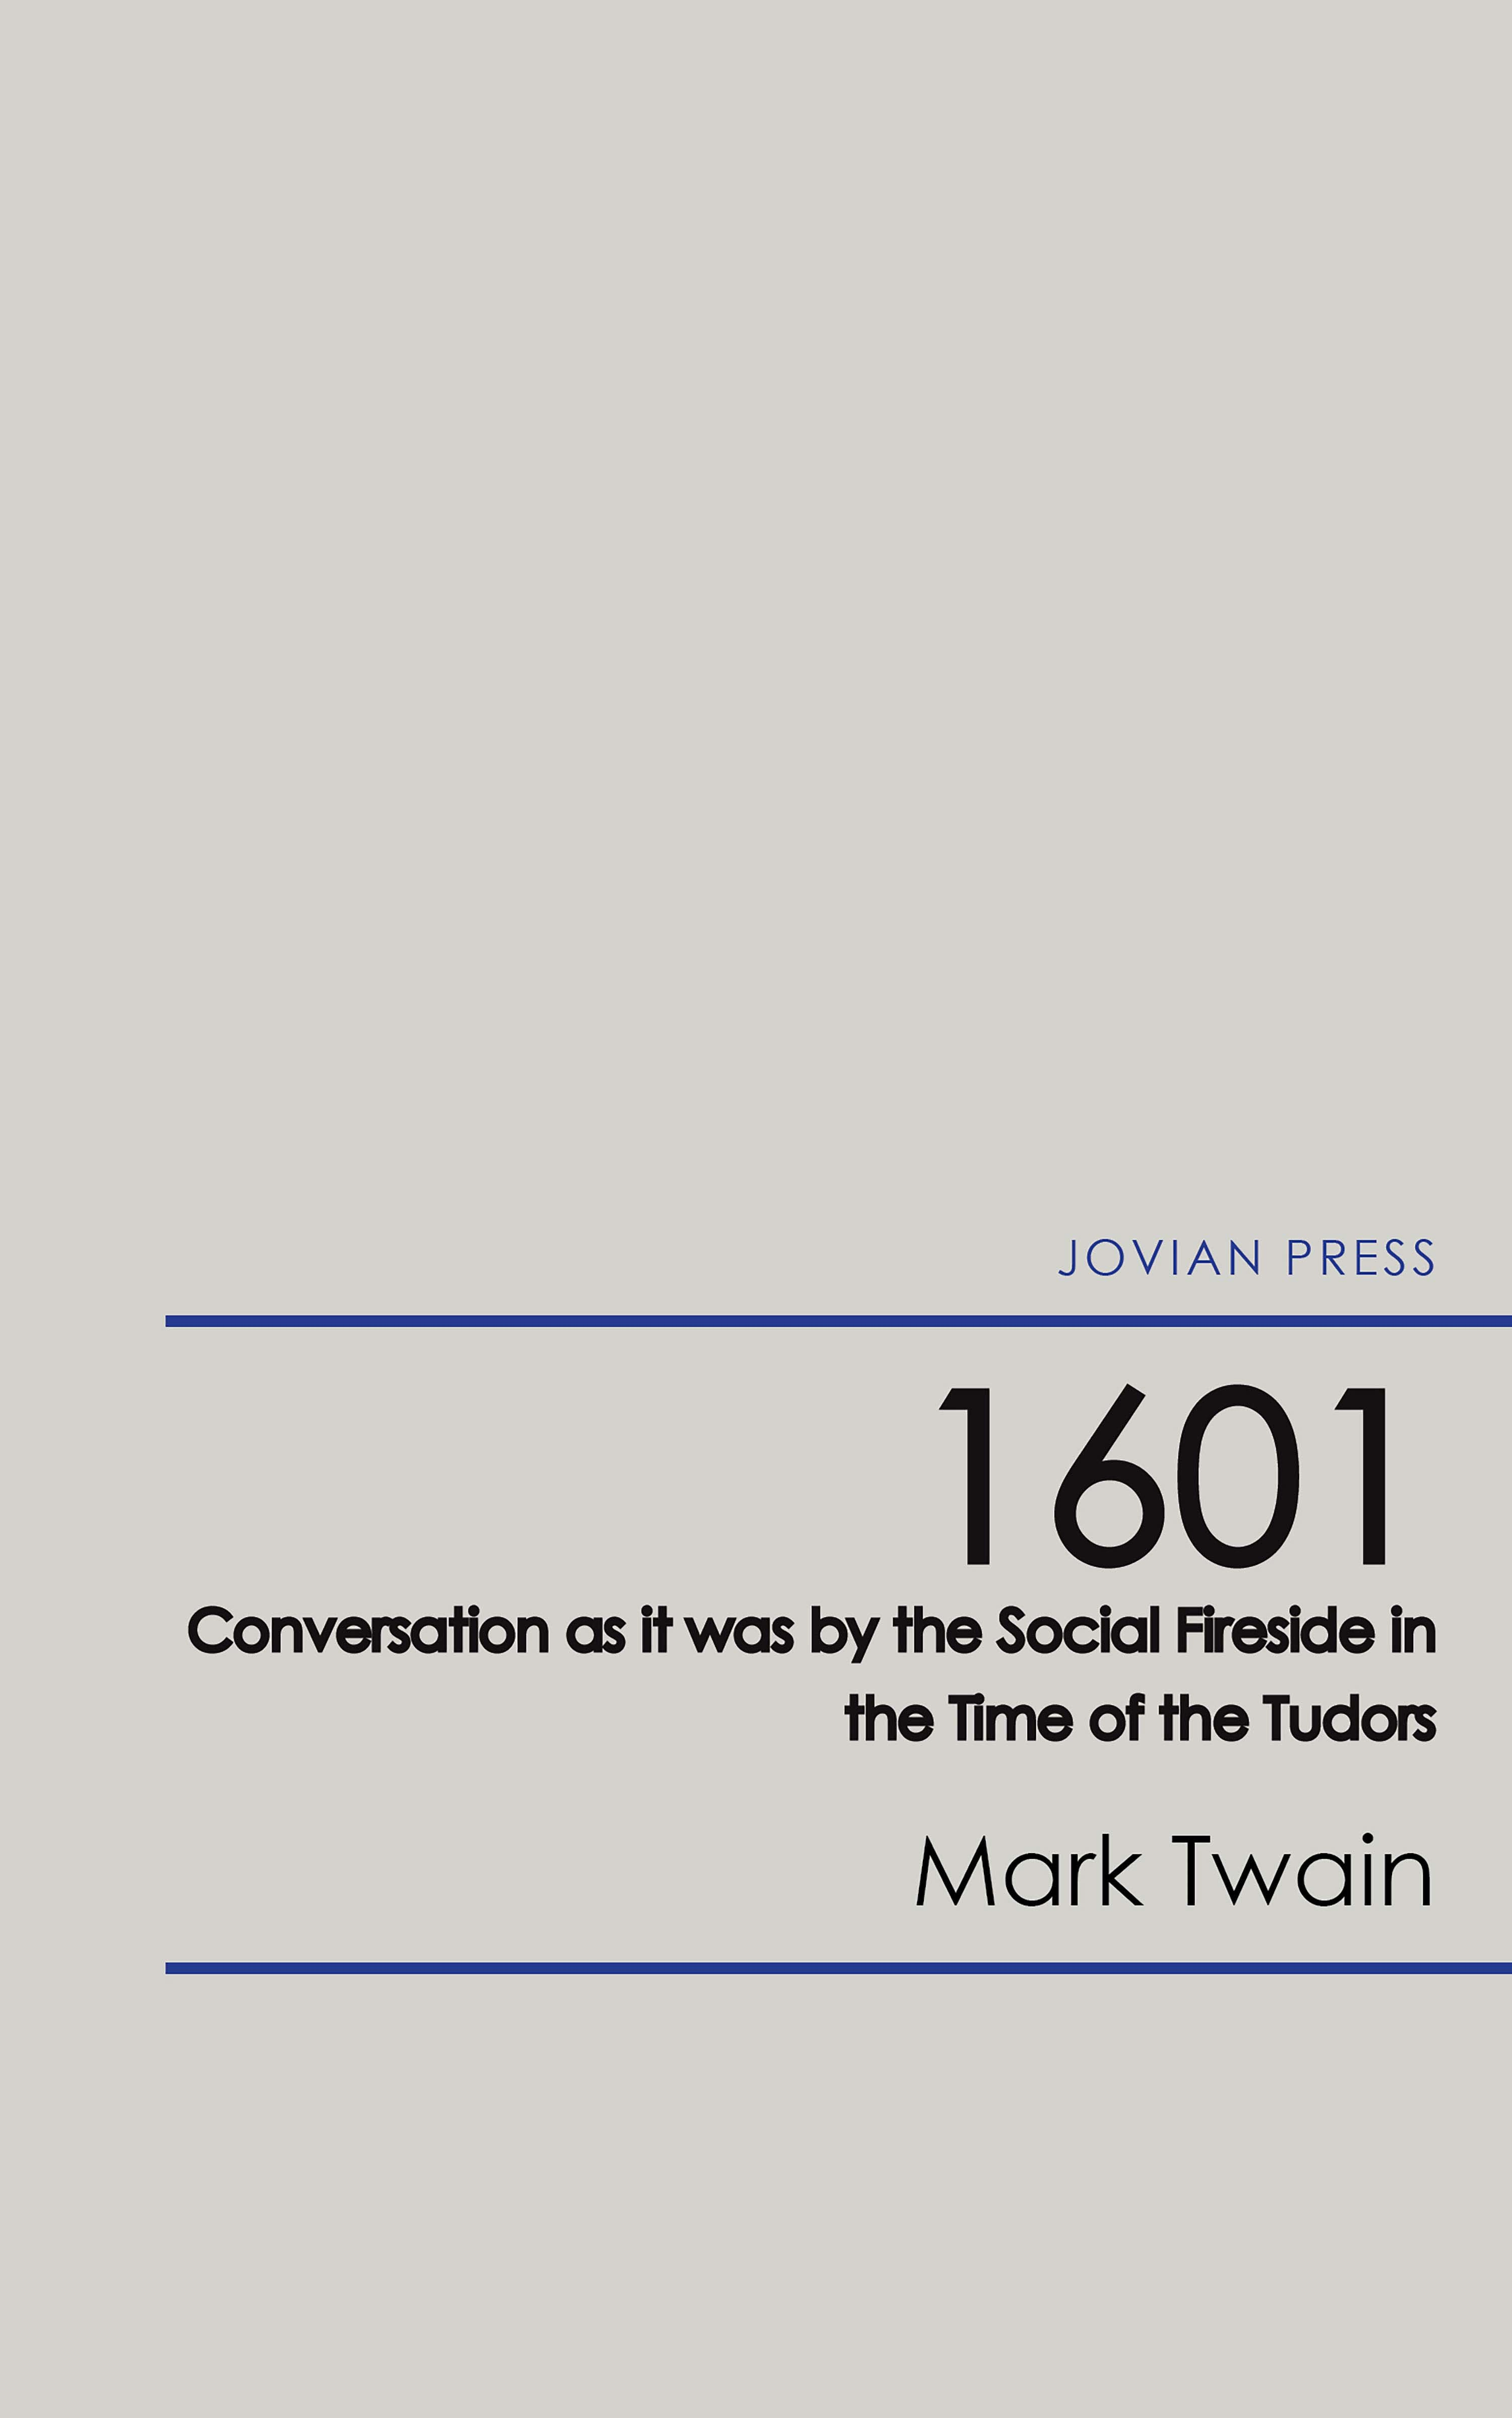 1601 conversation as it was by the social fireside in the time of the tudors